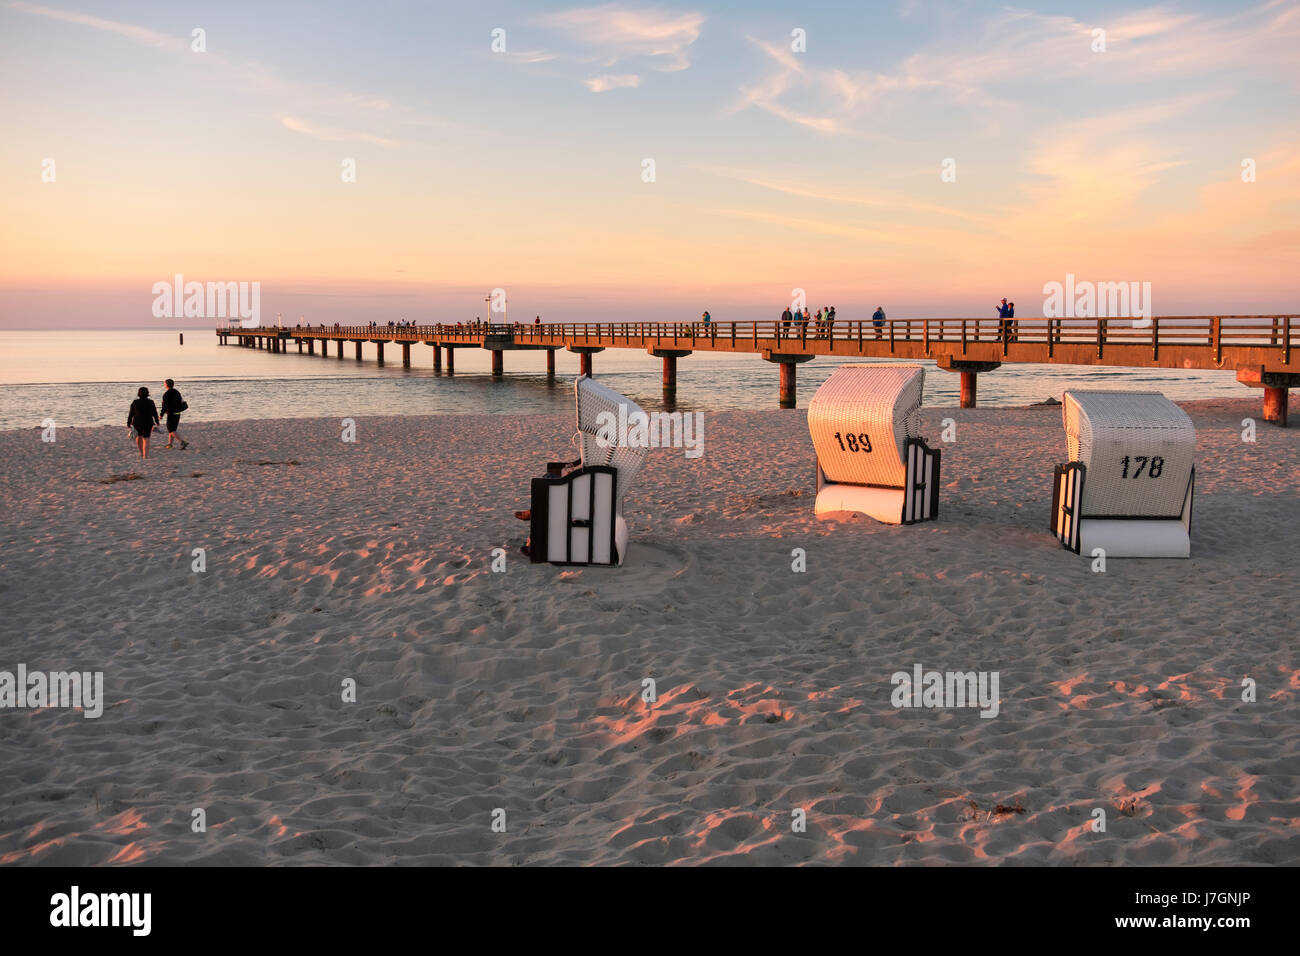 Beach chairs on the beach of Prerow, Baltic Sea, Darss, Mecklenburg-Vorpommern, Germany - Stock Image